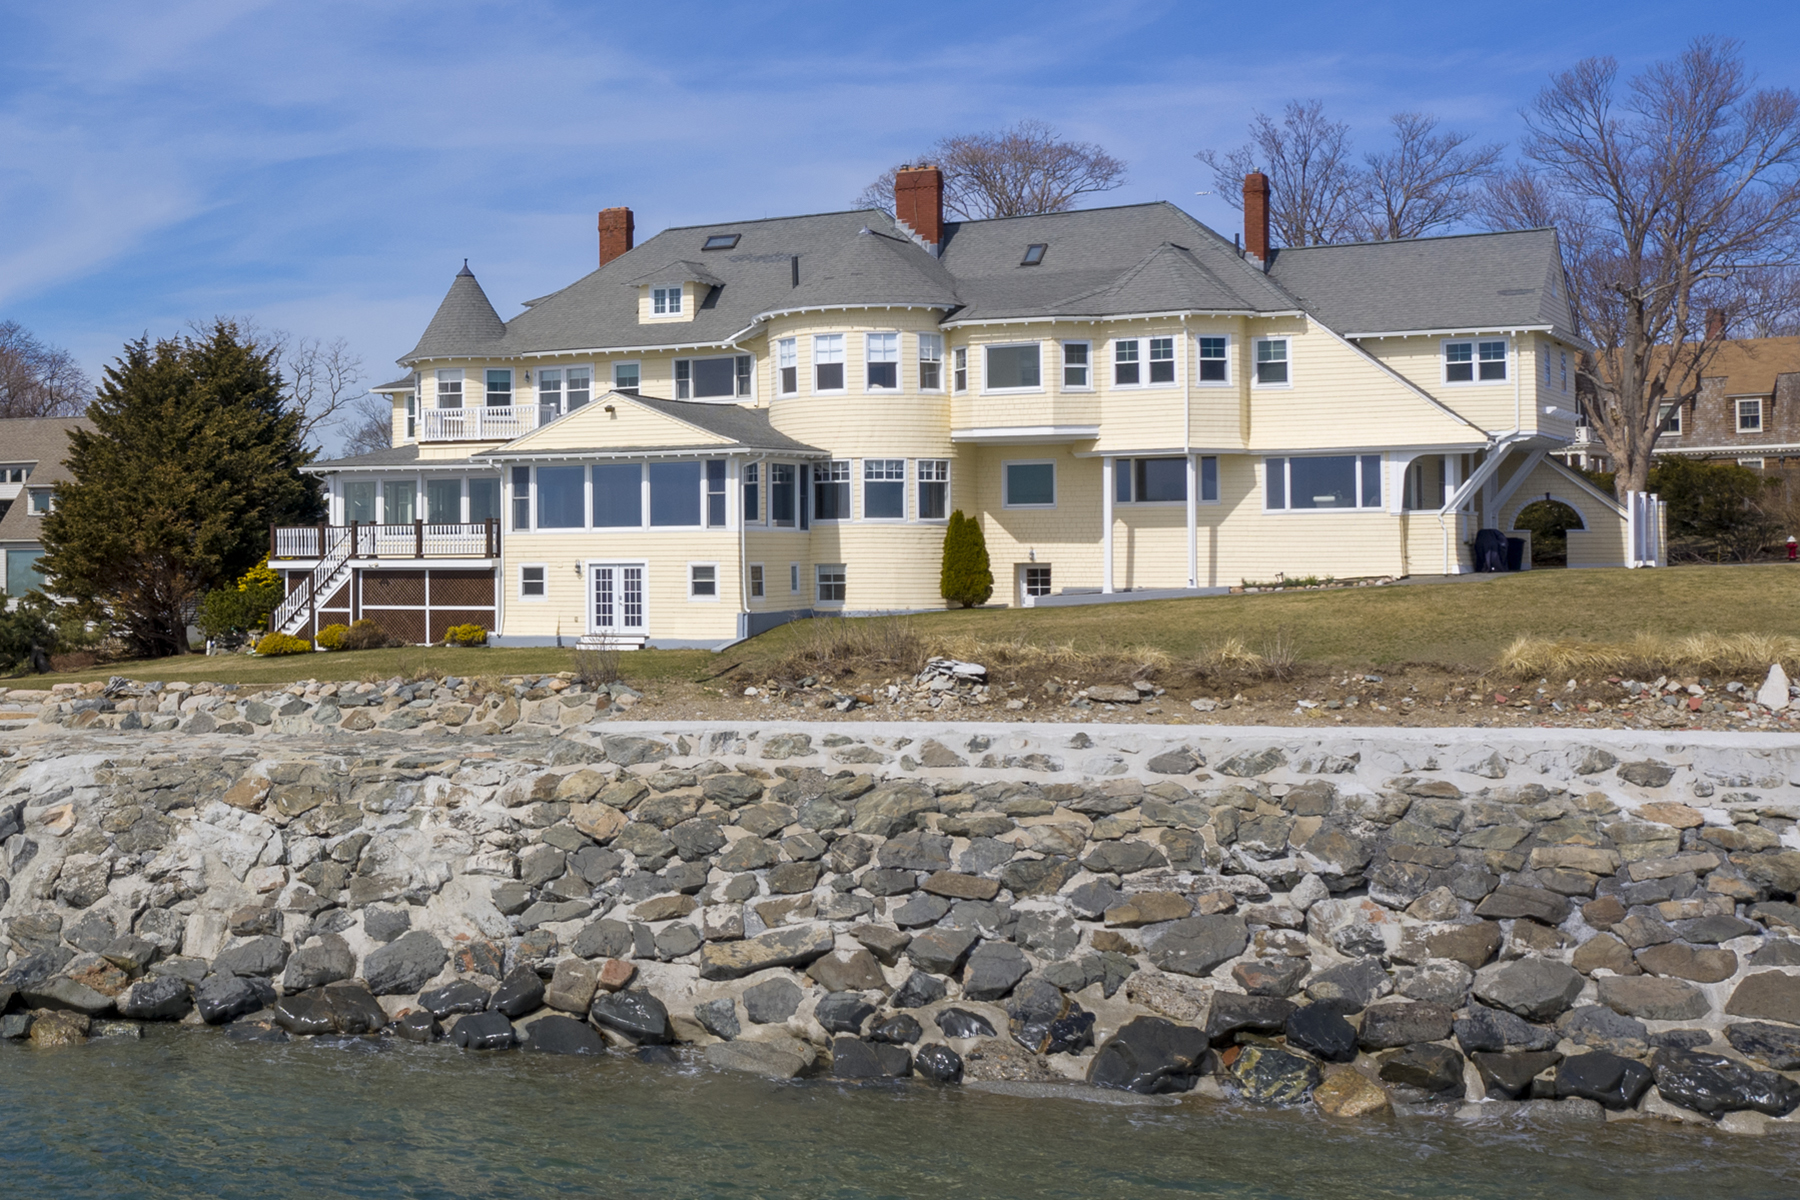 Single Family Homes for Active at Stunning oceanfront masterpiece 22 Northstone Road Swampscott, Massachusetts 01907 United States